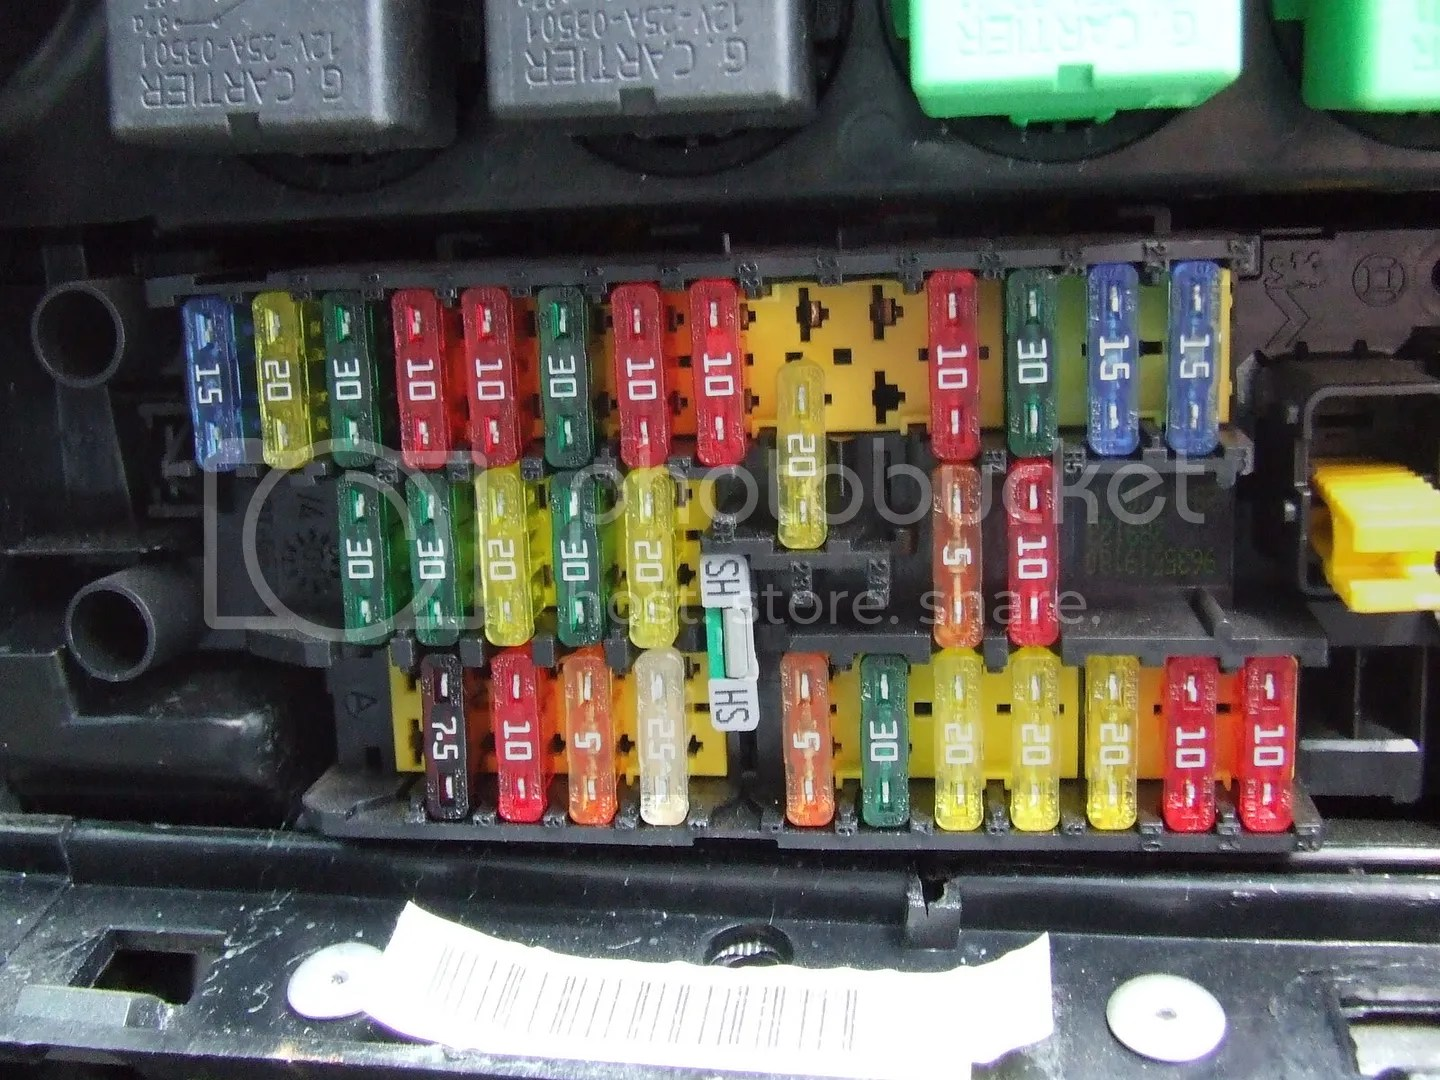 hight resolution of peugeot 306 meridian wiring diagram wiring diagram toolboxpeugeot 306 meridian wiring diagram wiring library 306oc peugeot